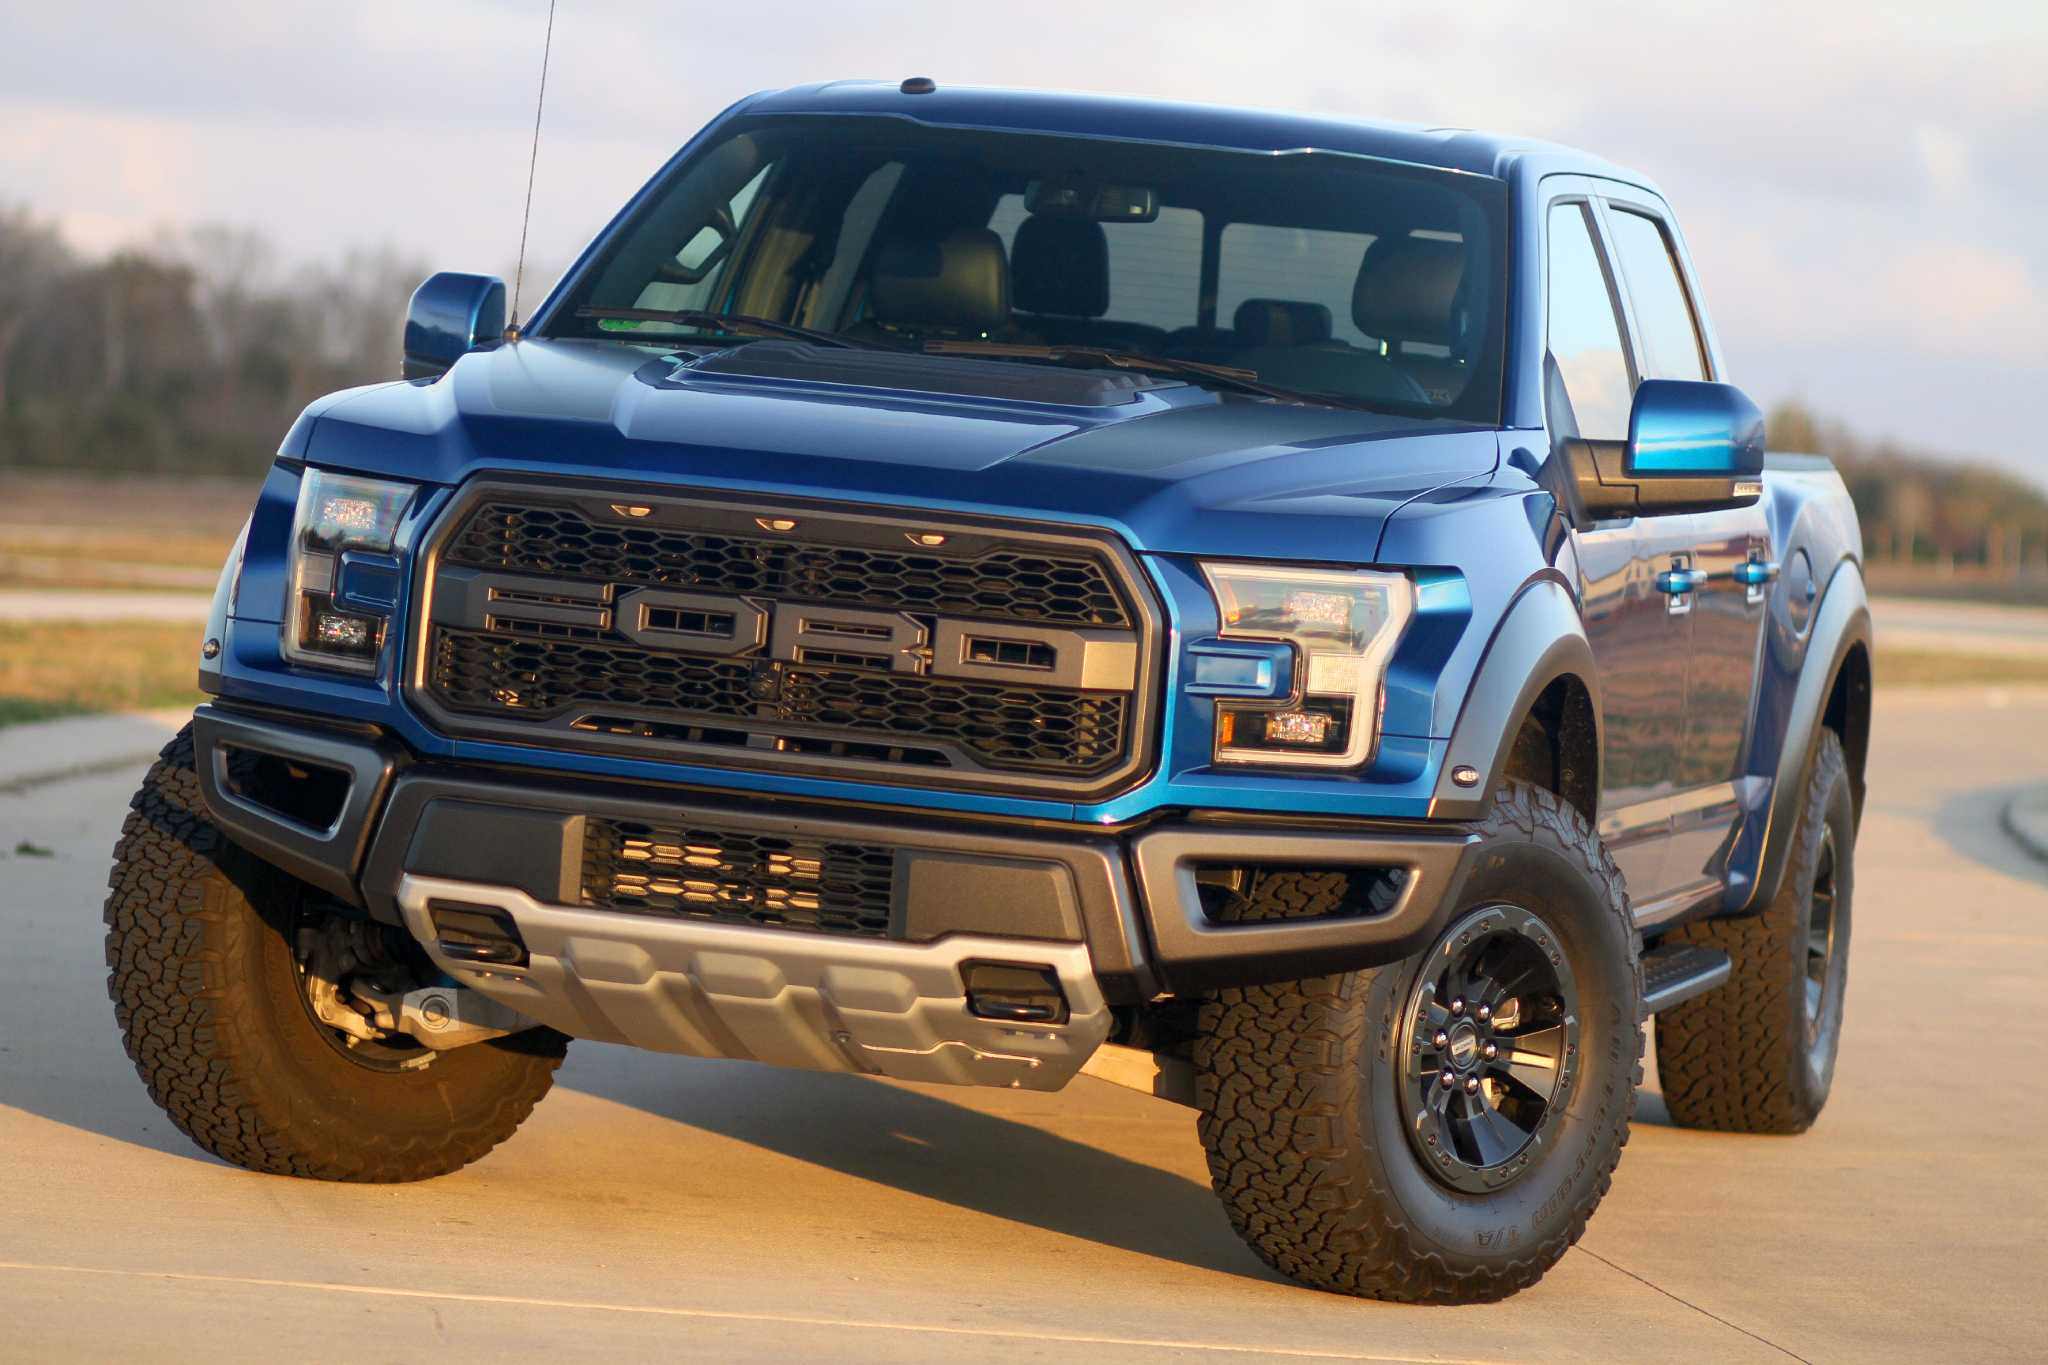 Ford's popular fortified F-150 Raptor returns for 2017